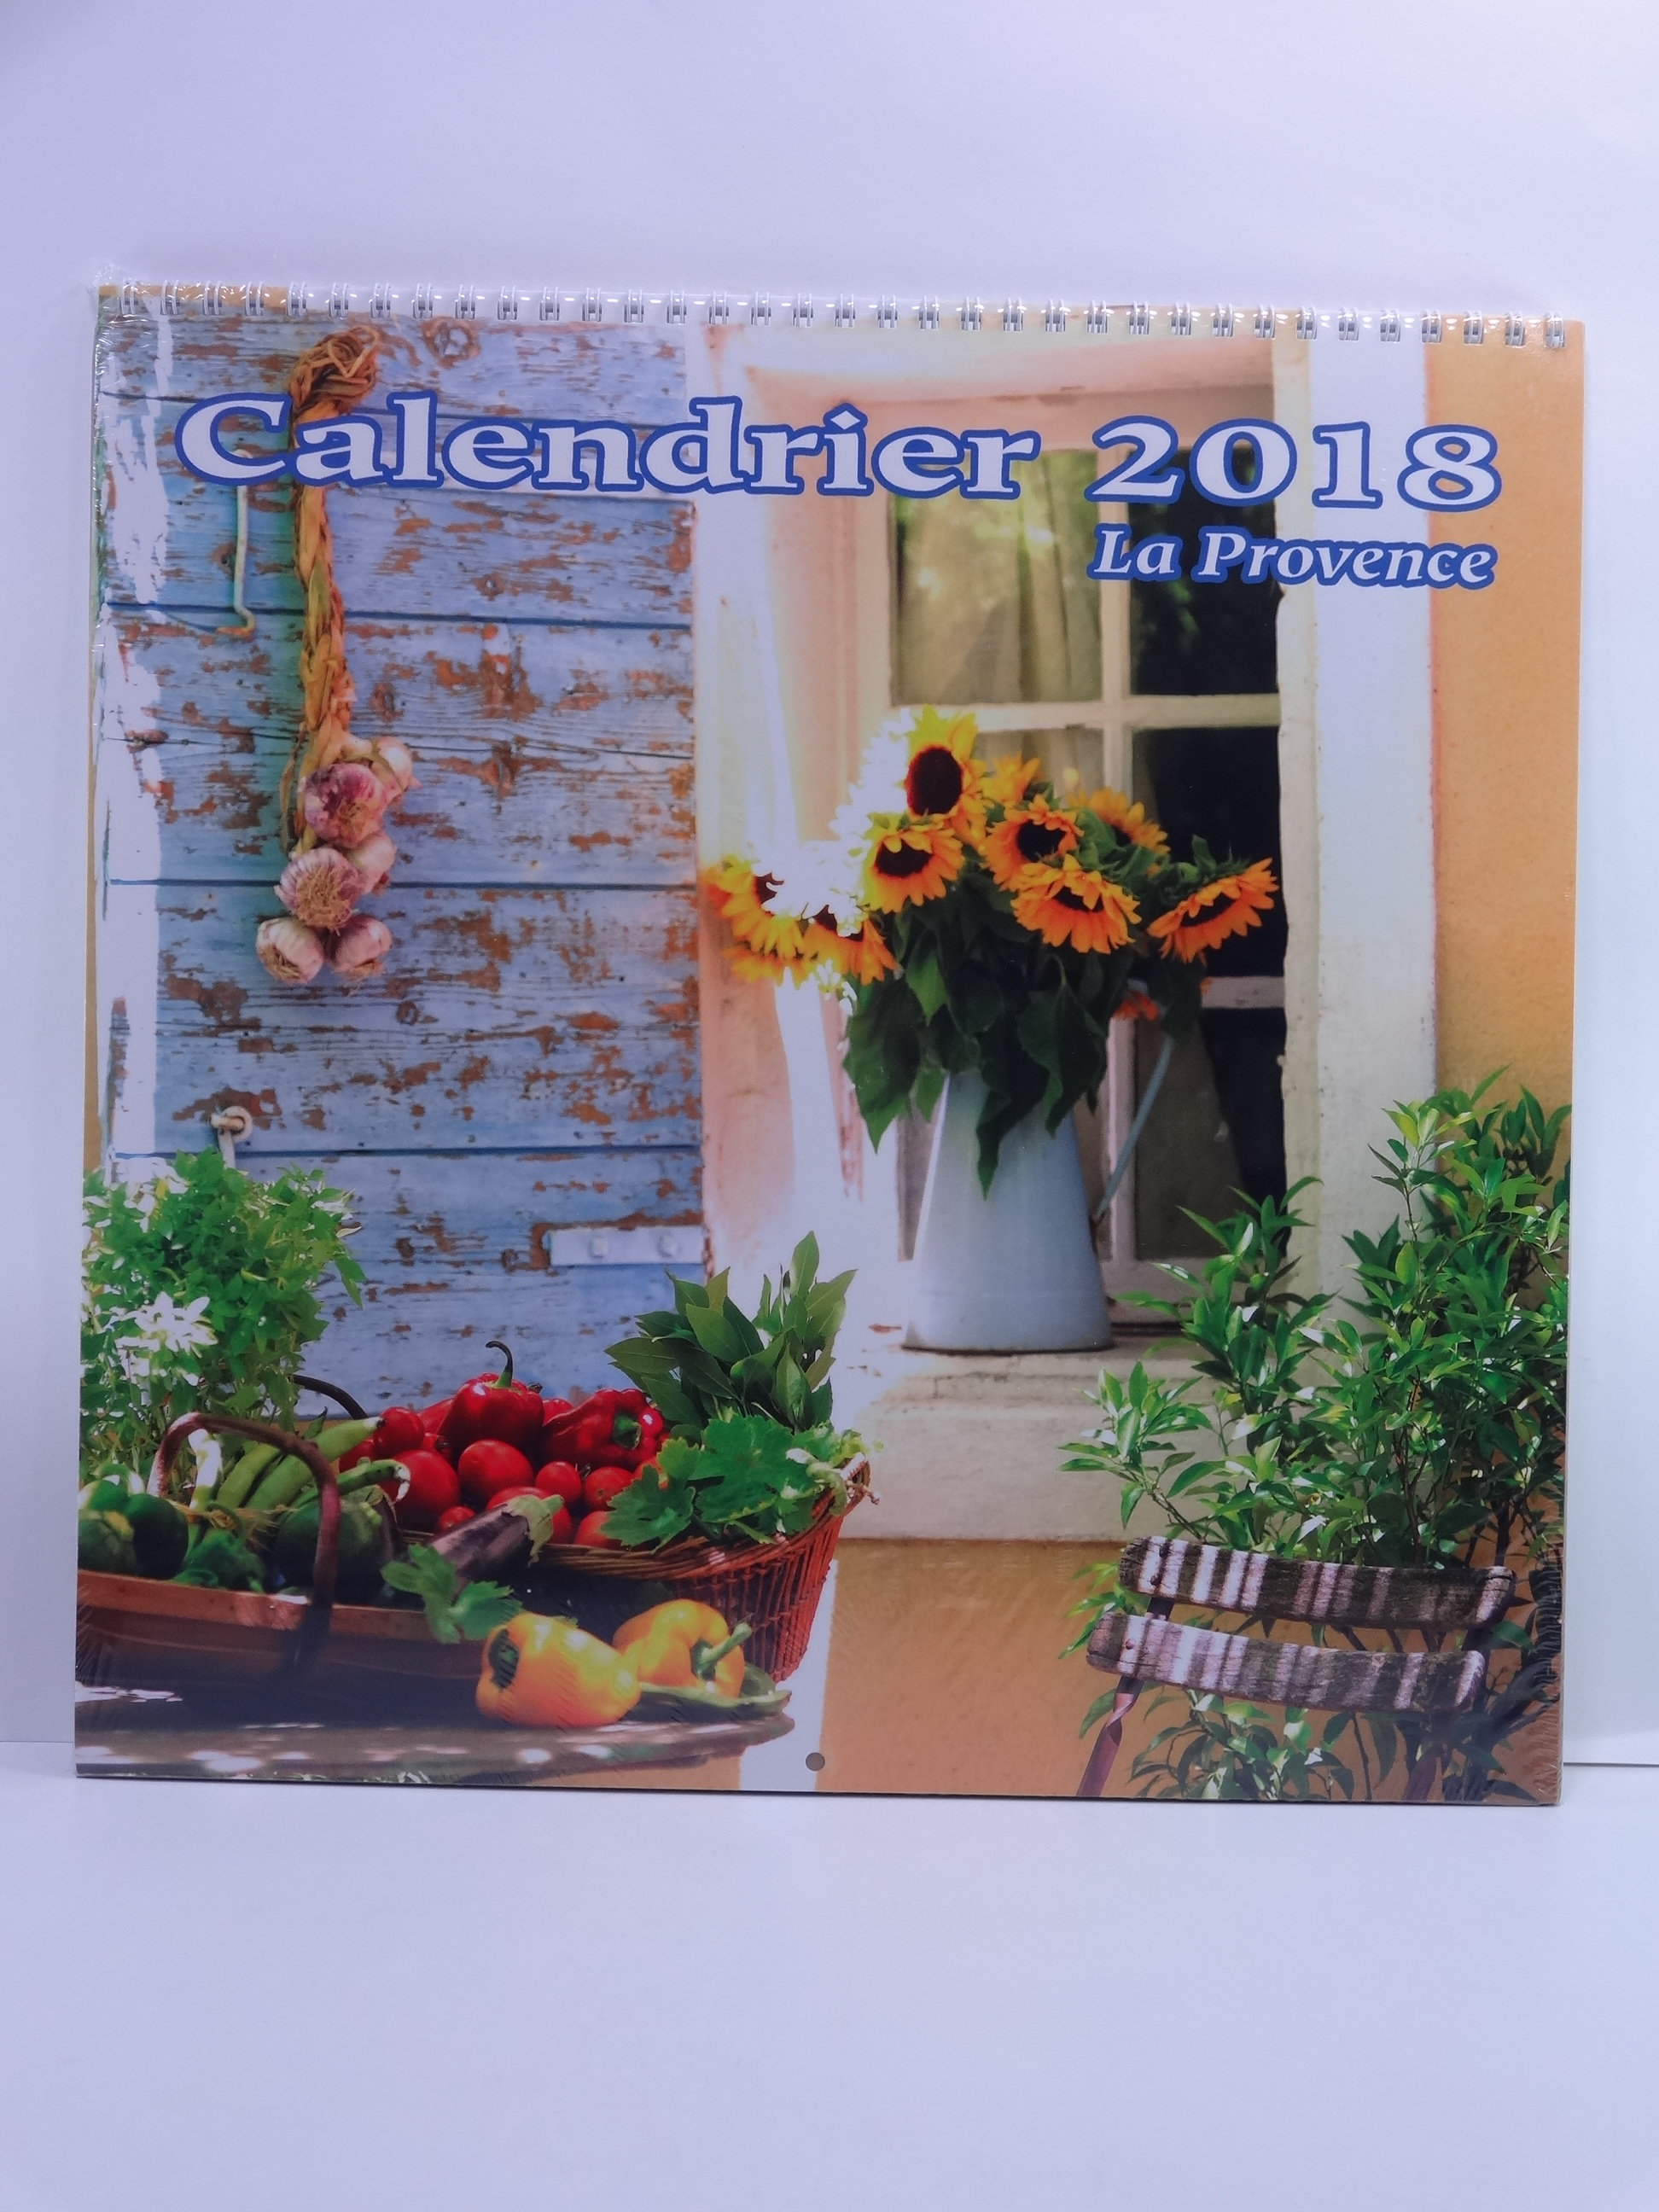 Grand calendrier de provence 2018 th me bordure de fenetre for Bordure de fenetre